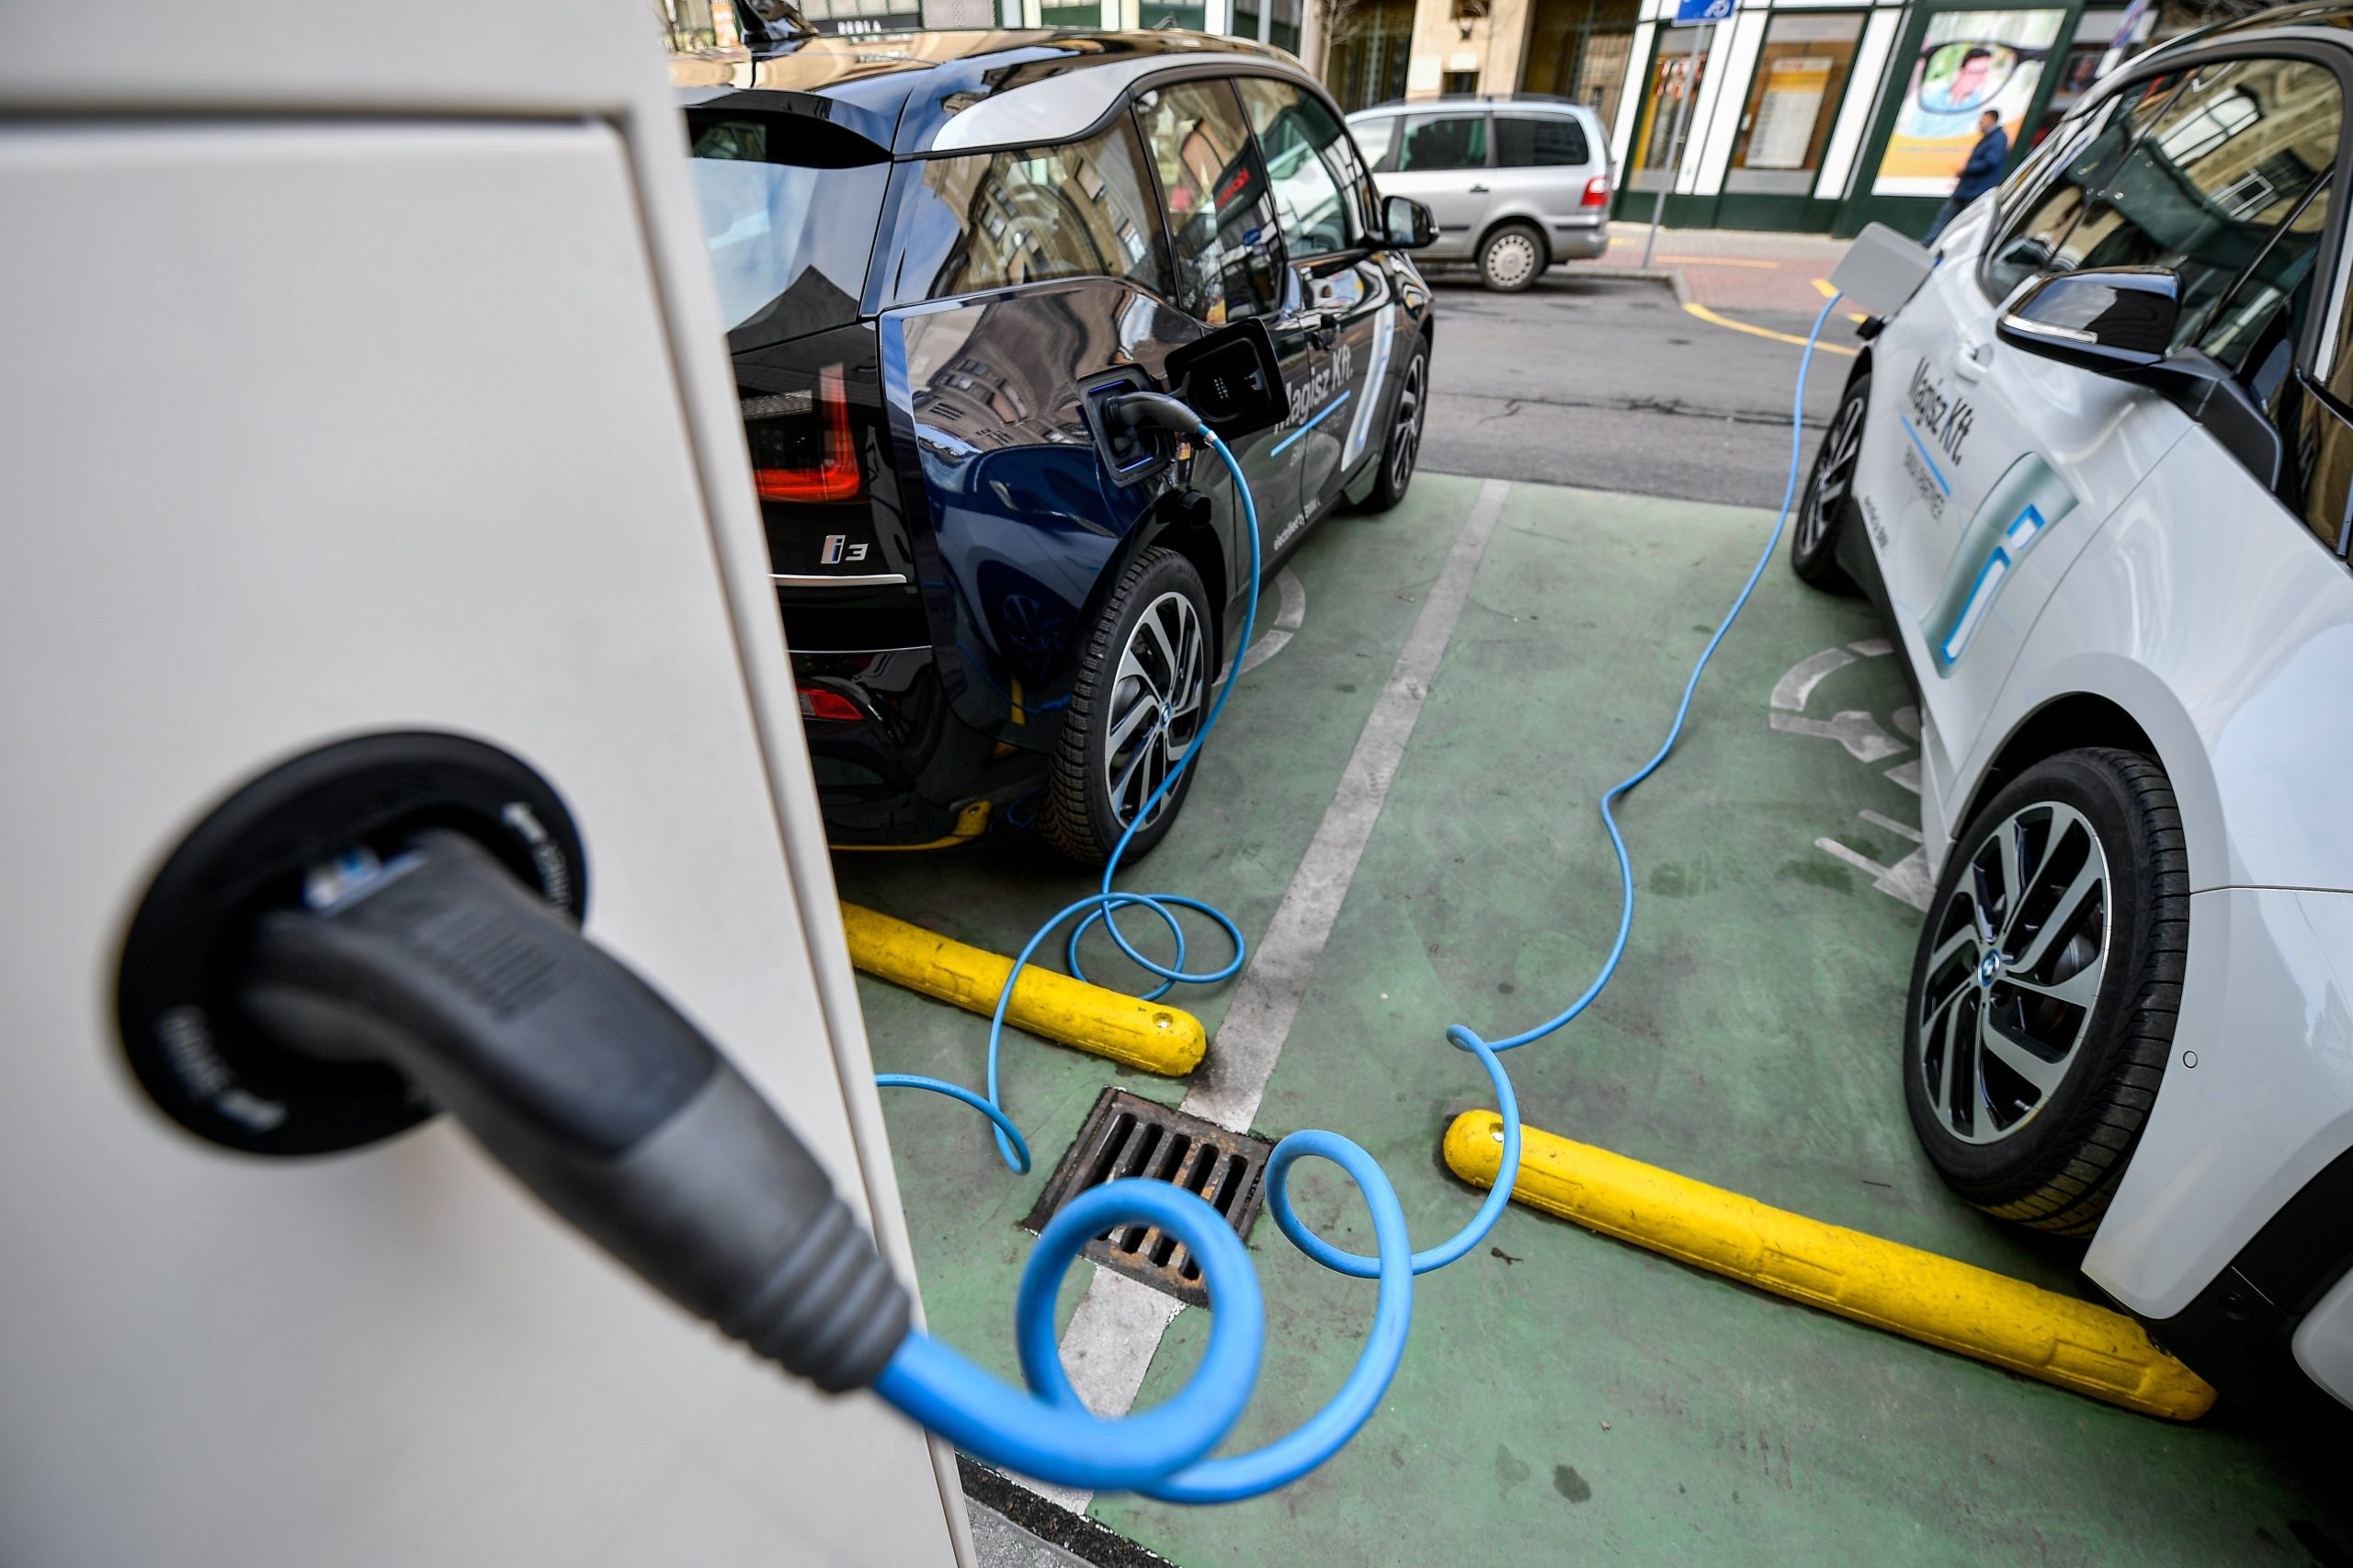 Gov't Expands Electric Car Subsidy Scheme After Successful First Scheme